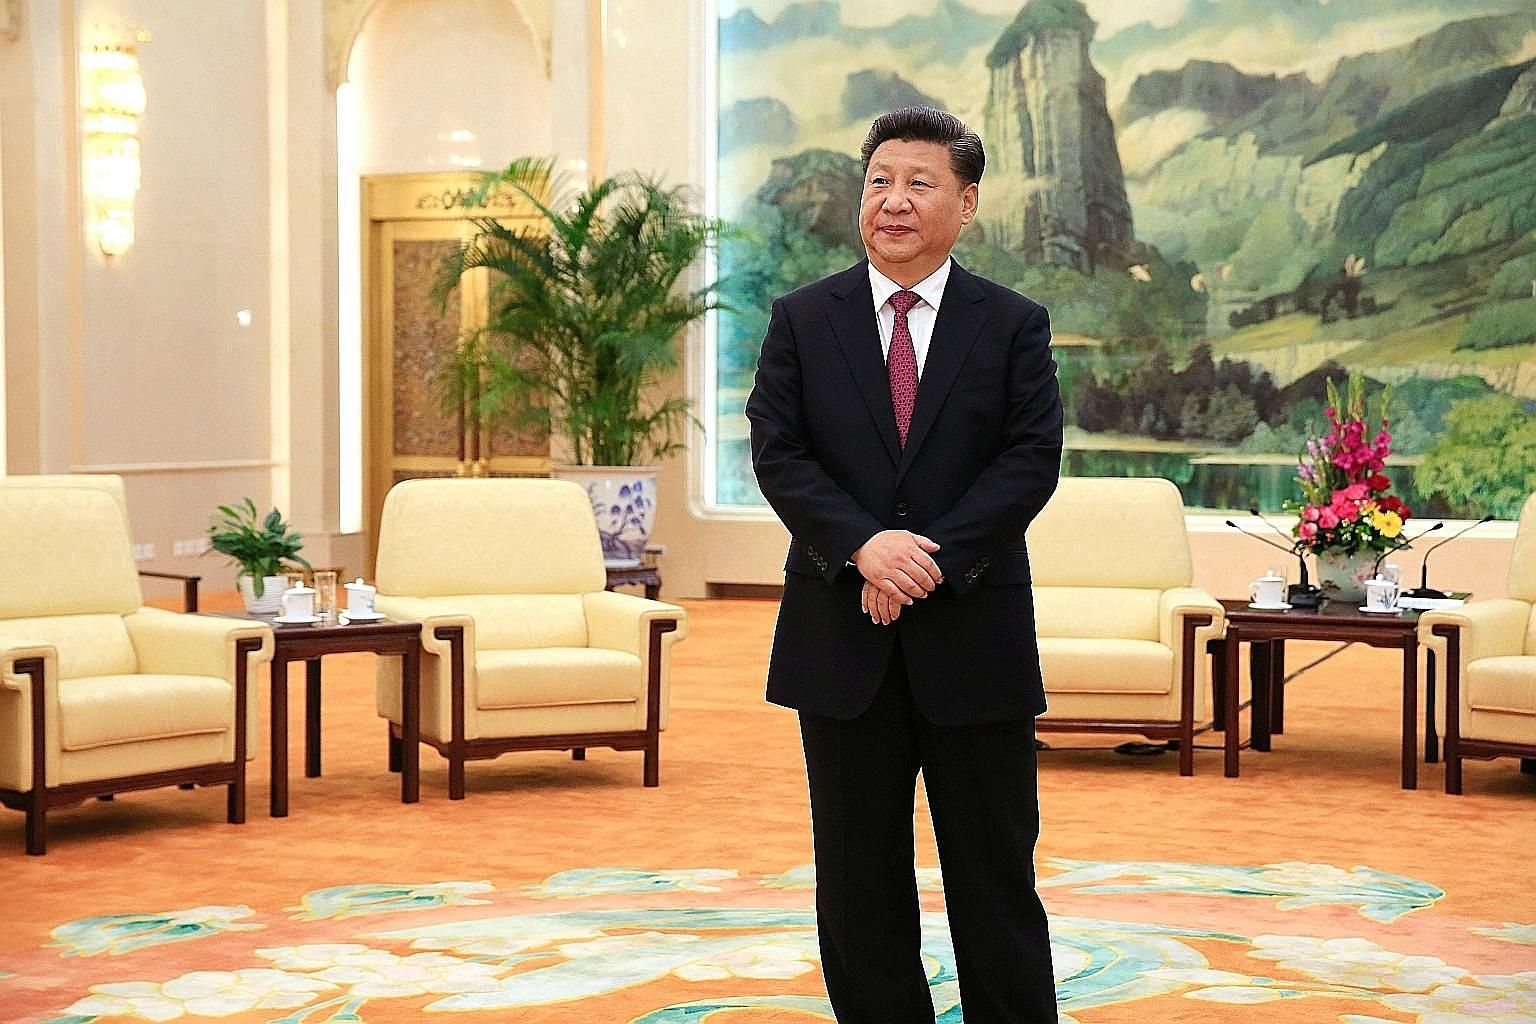 Mr Wu Yingjie, who has worked in Tibet since 1974, is now its new party boss.